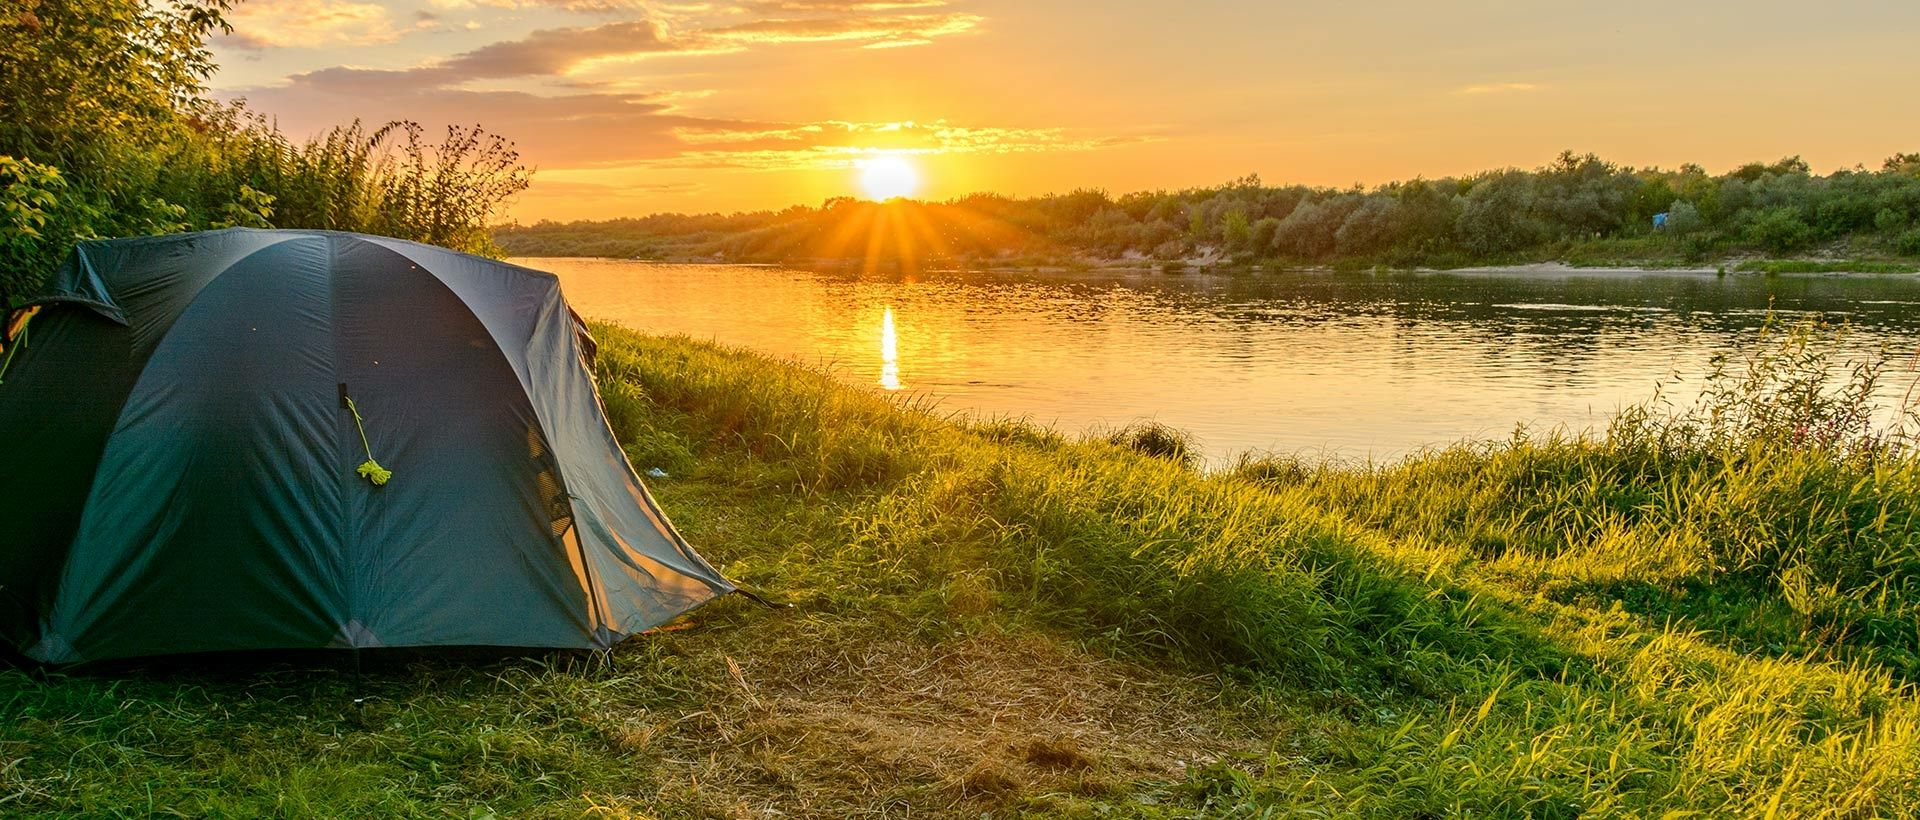 The camper's checklist: 10 essentials for a successful holiday